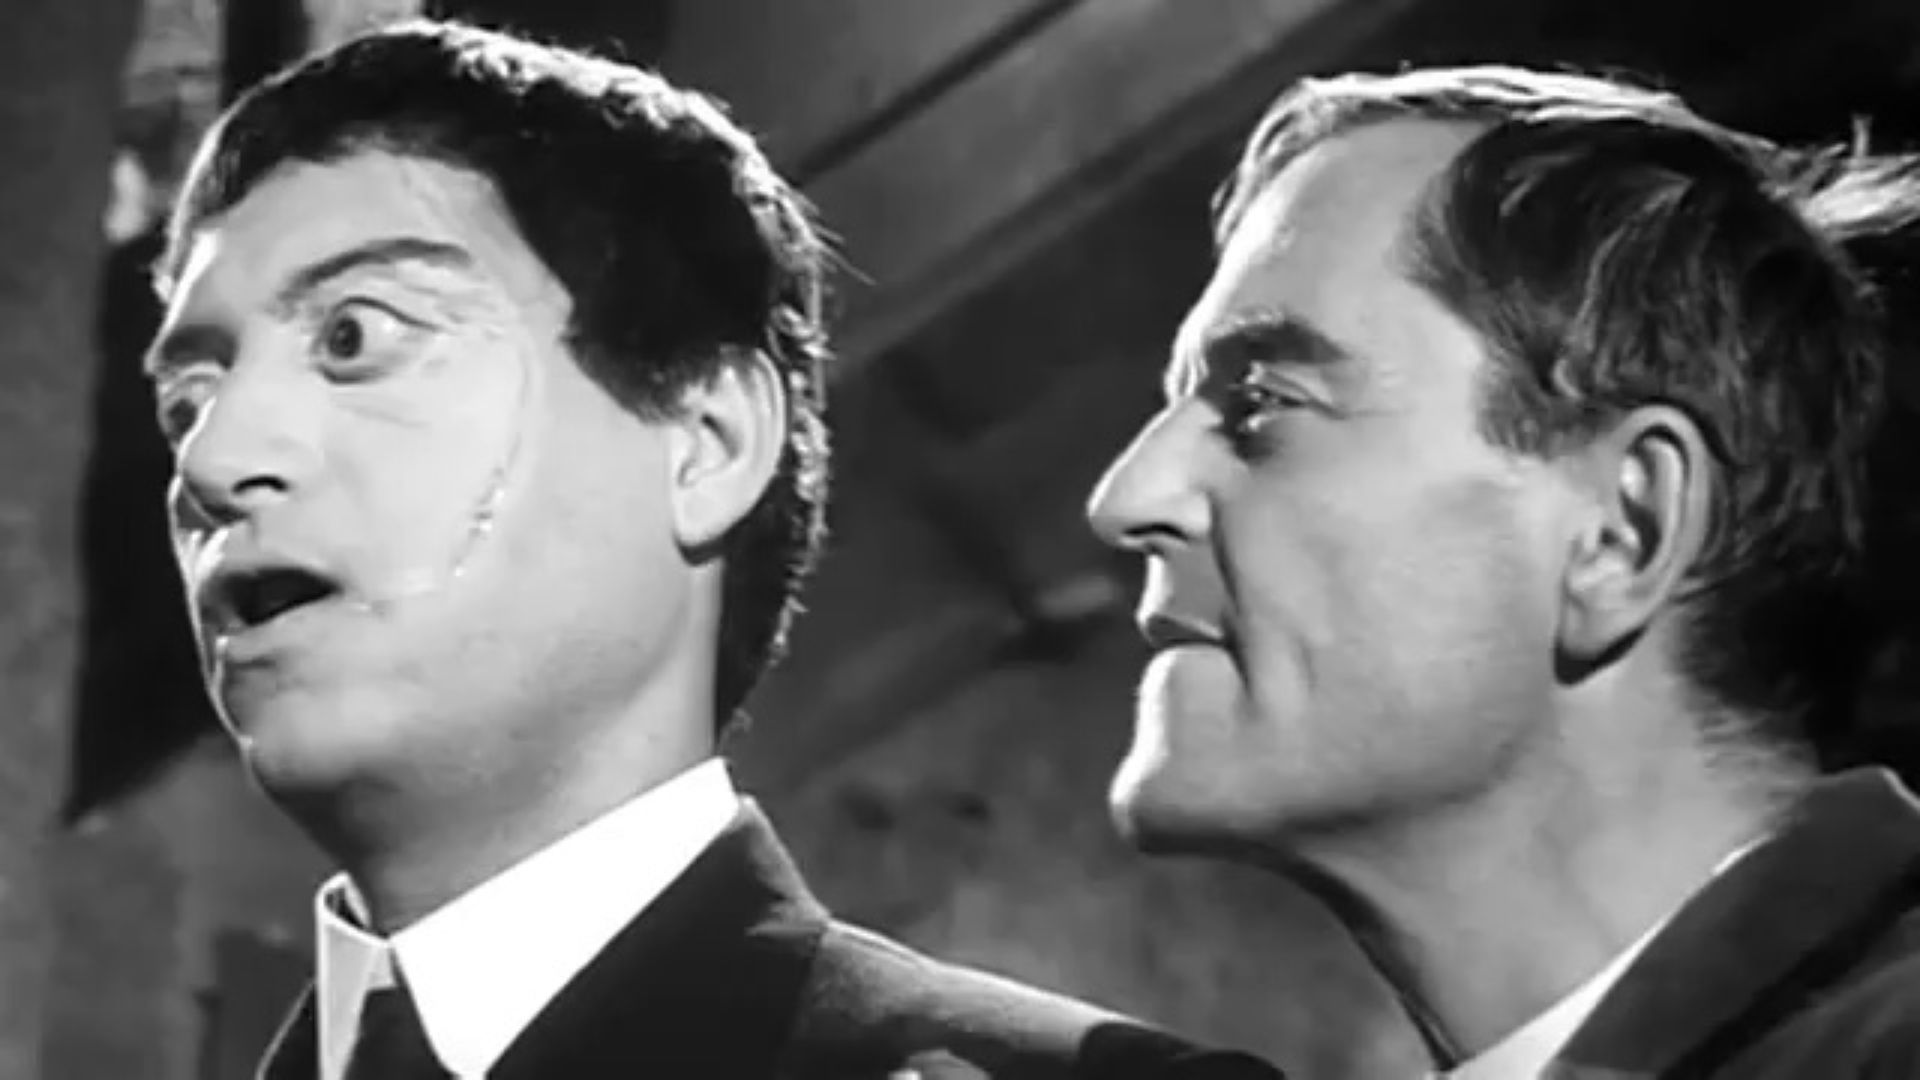 Dr Orloff (Howard Vernon) and Morpho (Riccardo Valle) in The Awful Dr Orloff (1962)